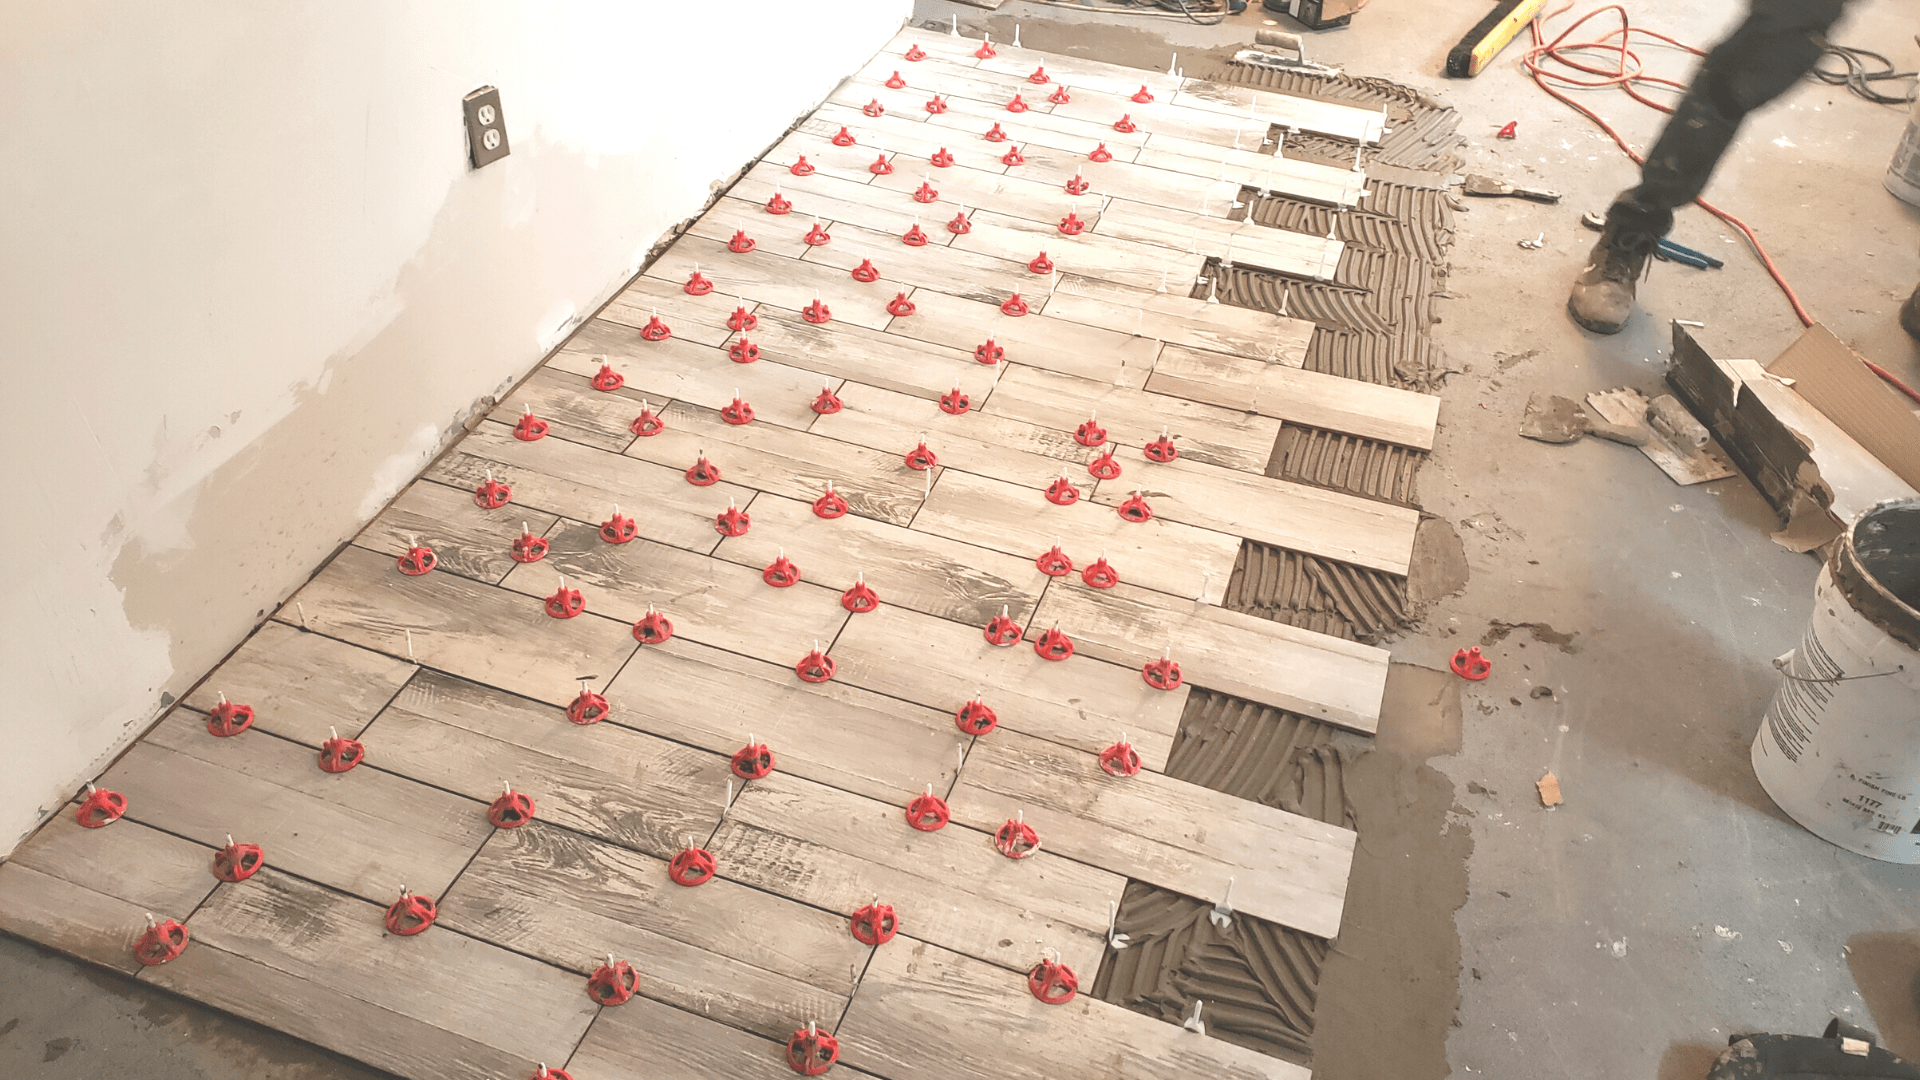 Spin doctor tile levling system being used on an in-progress tile floor